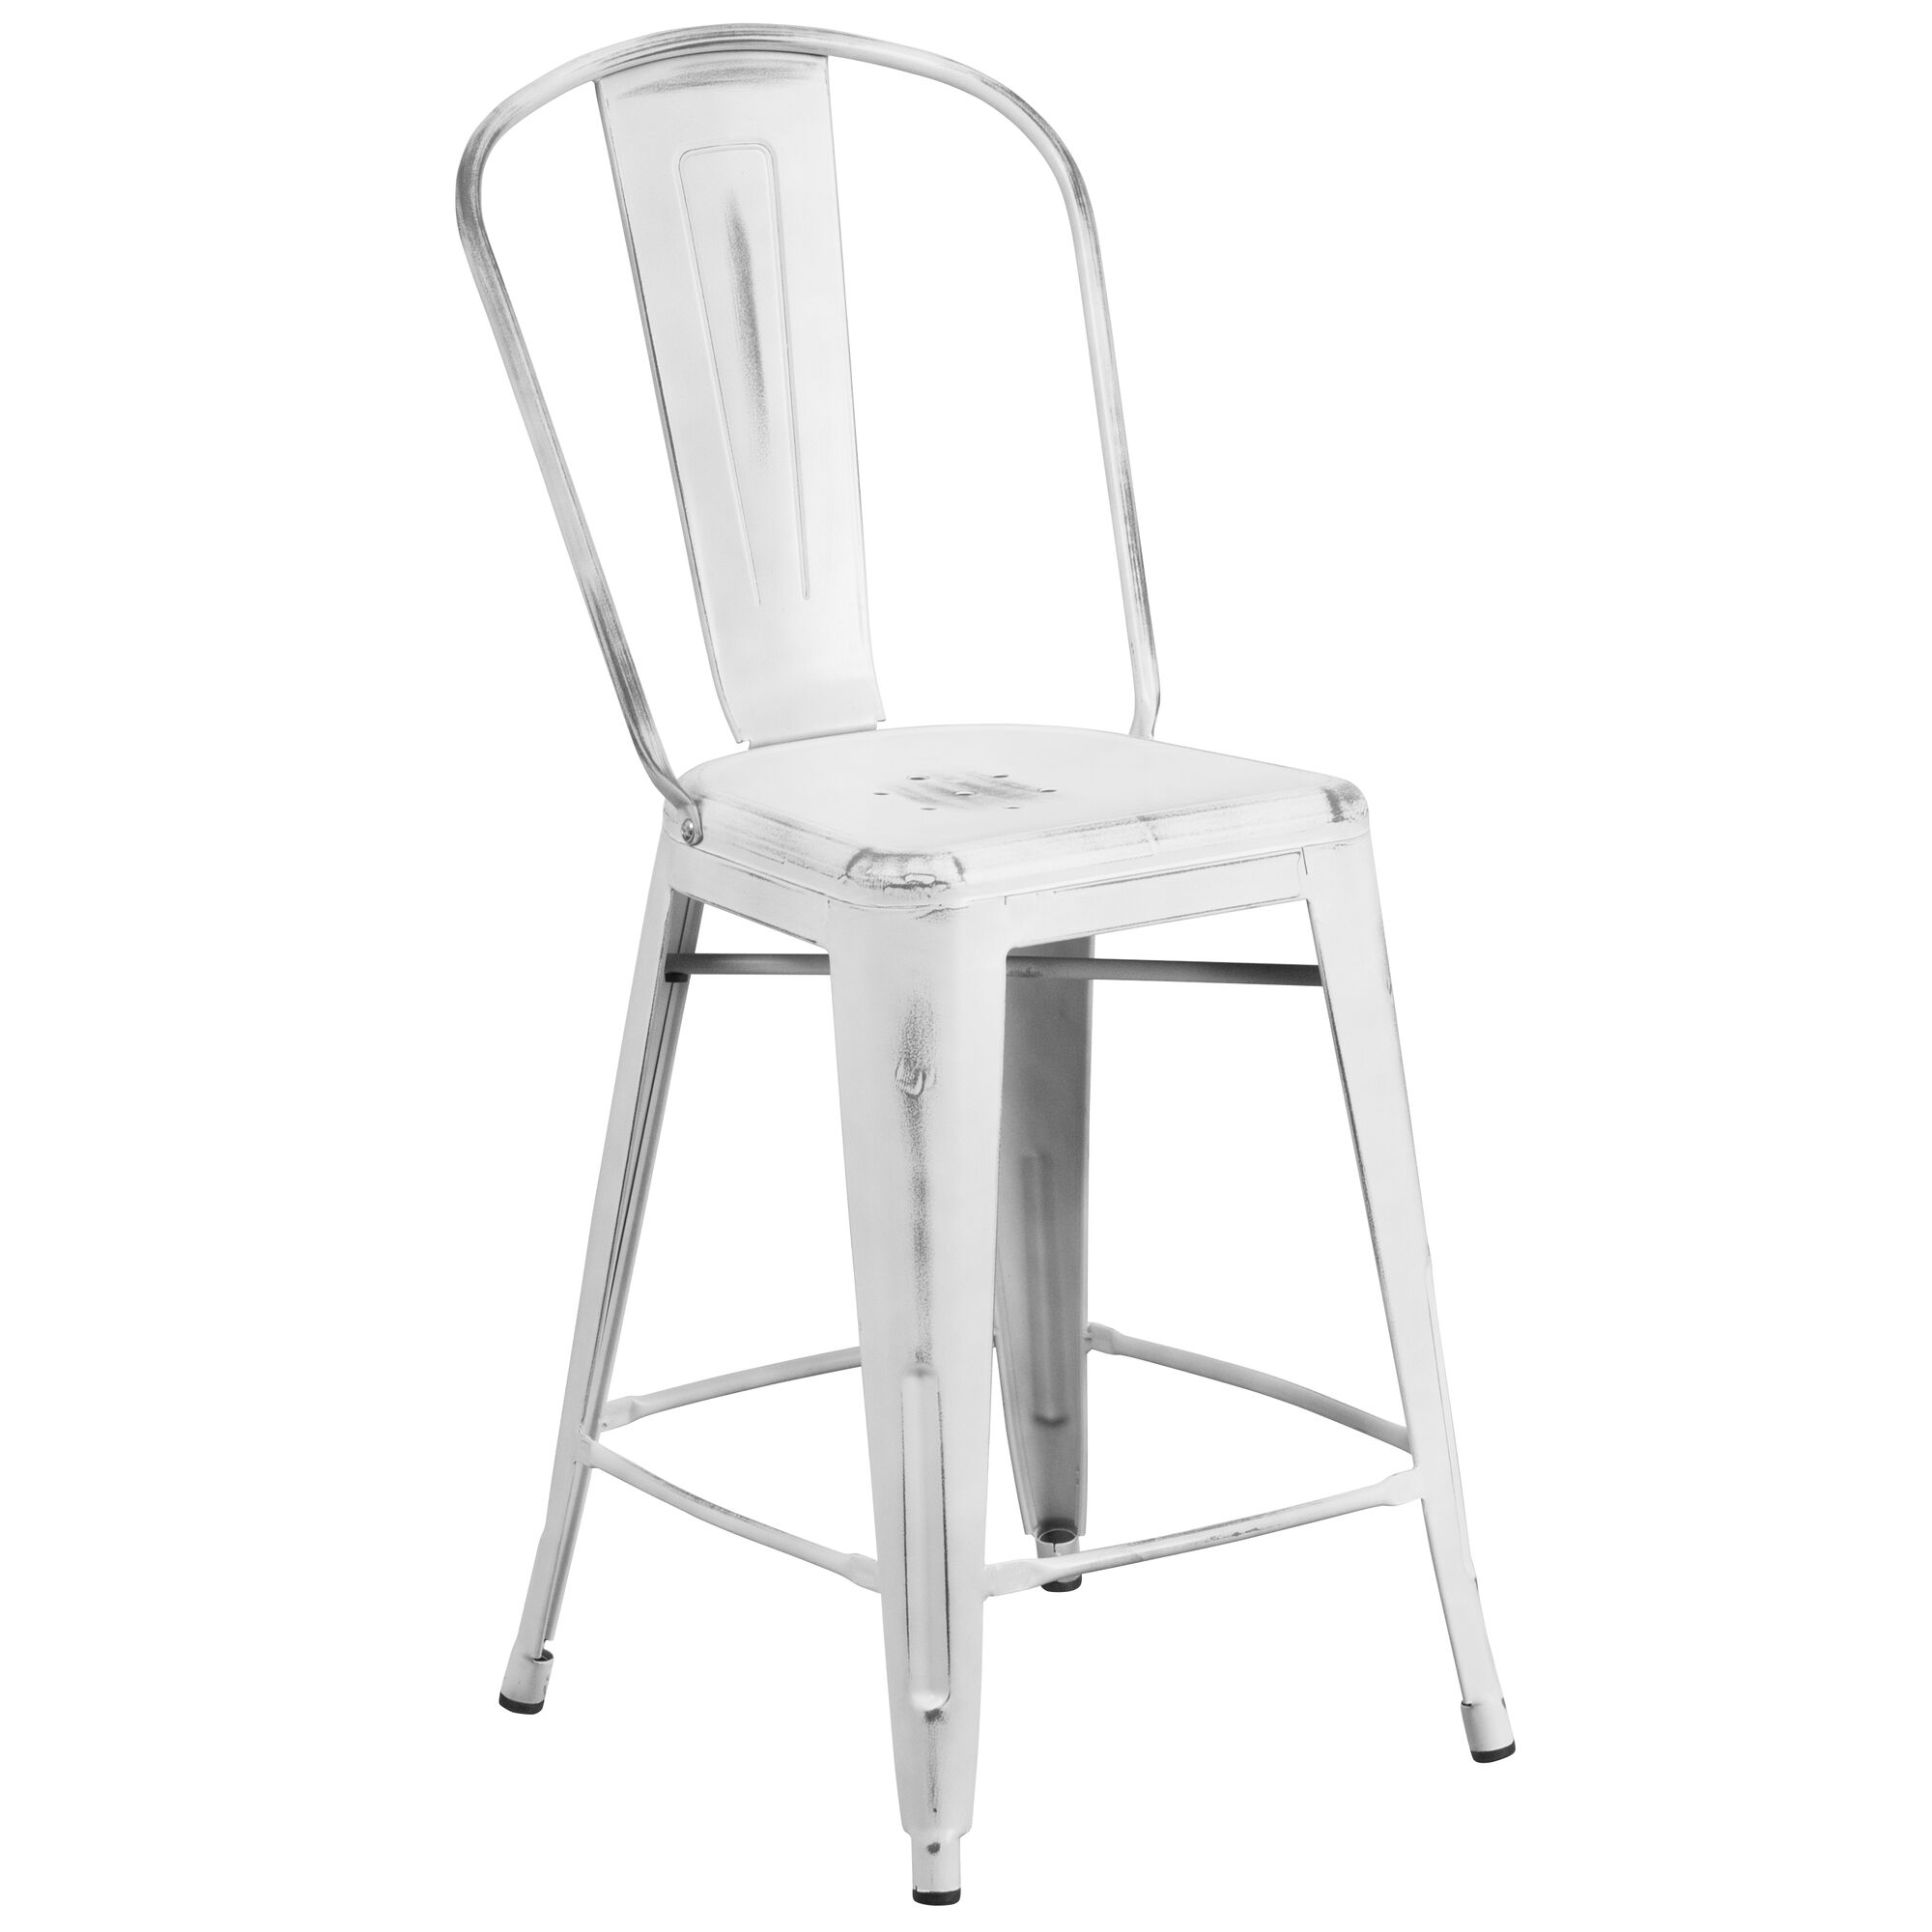 Distressed White Metal Stool Et 3534 24 Wh Gg Churchchairs4lesscom